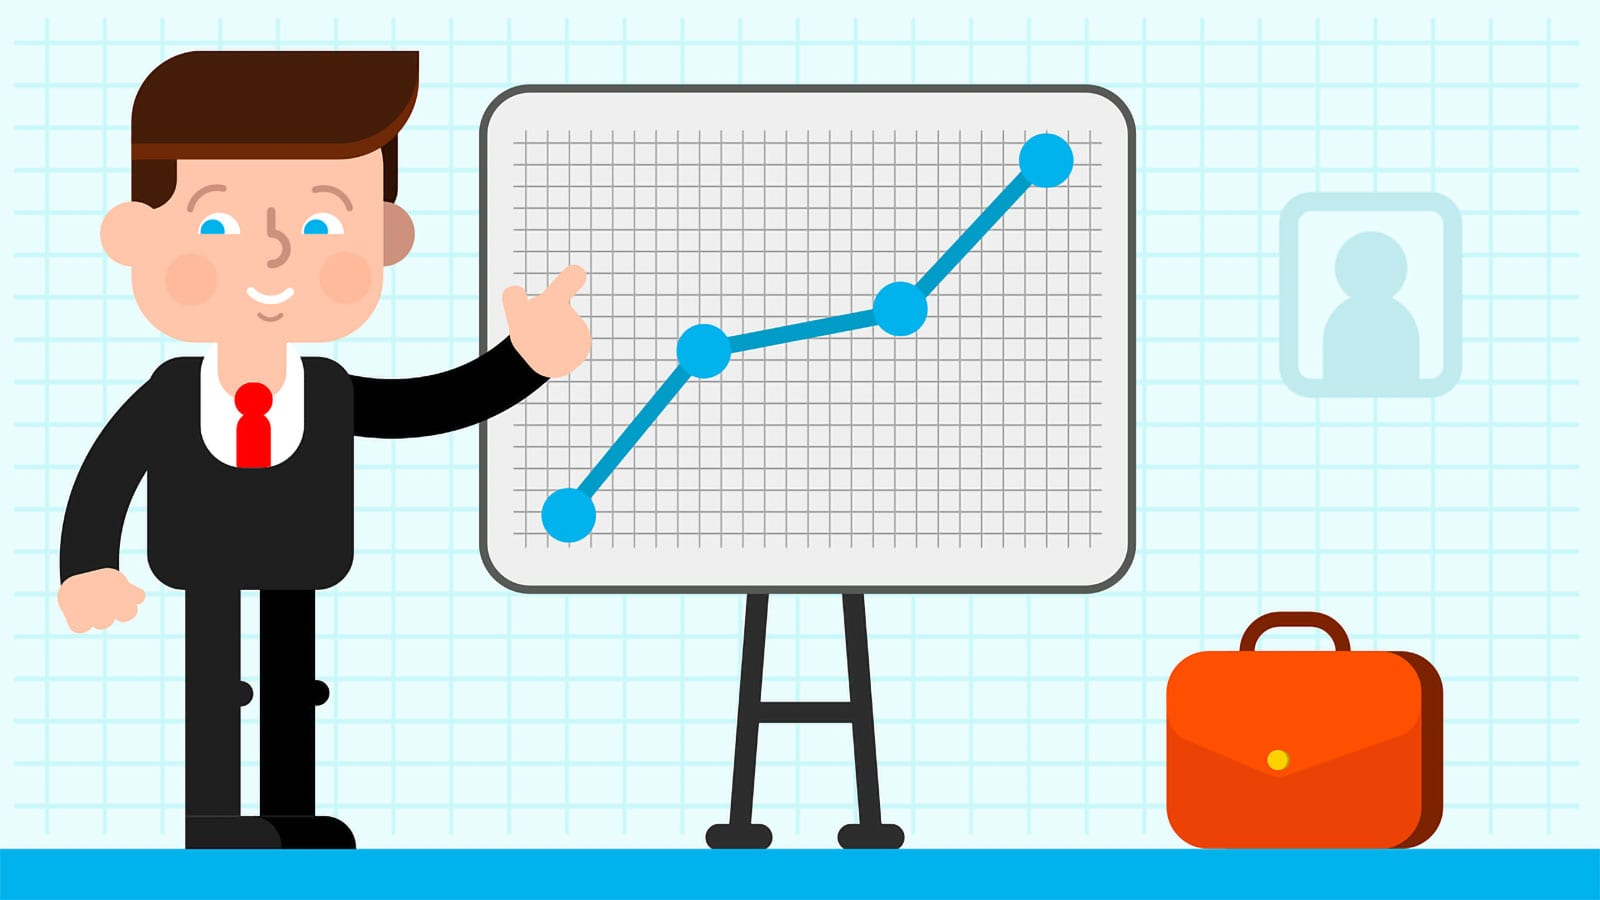 Want to Improve Your Advertising? Align Your Measurement Strategy With the Right KPIs